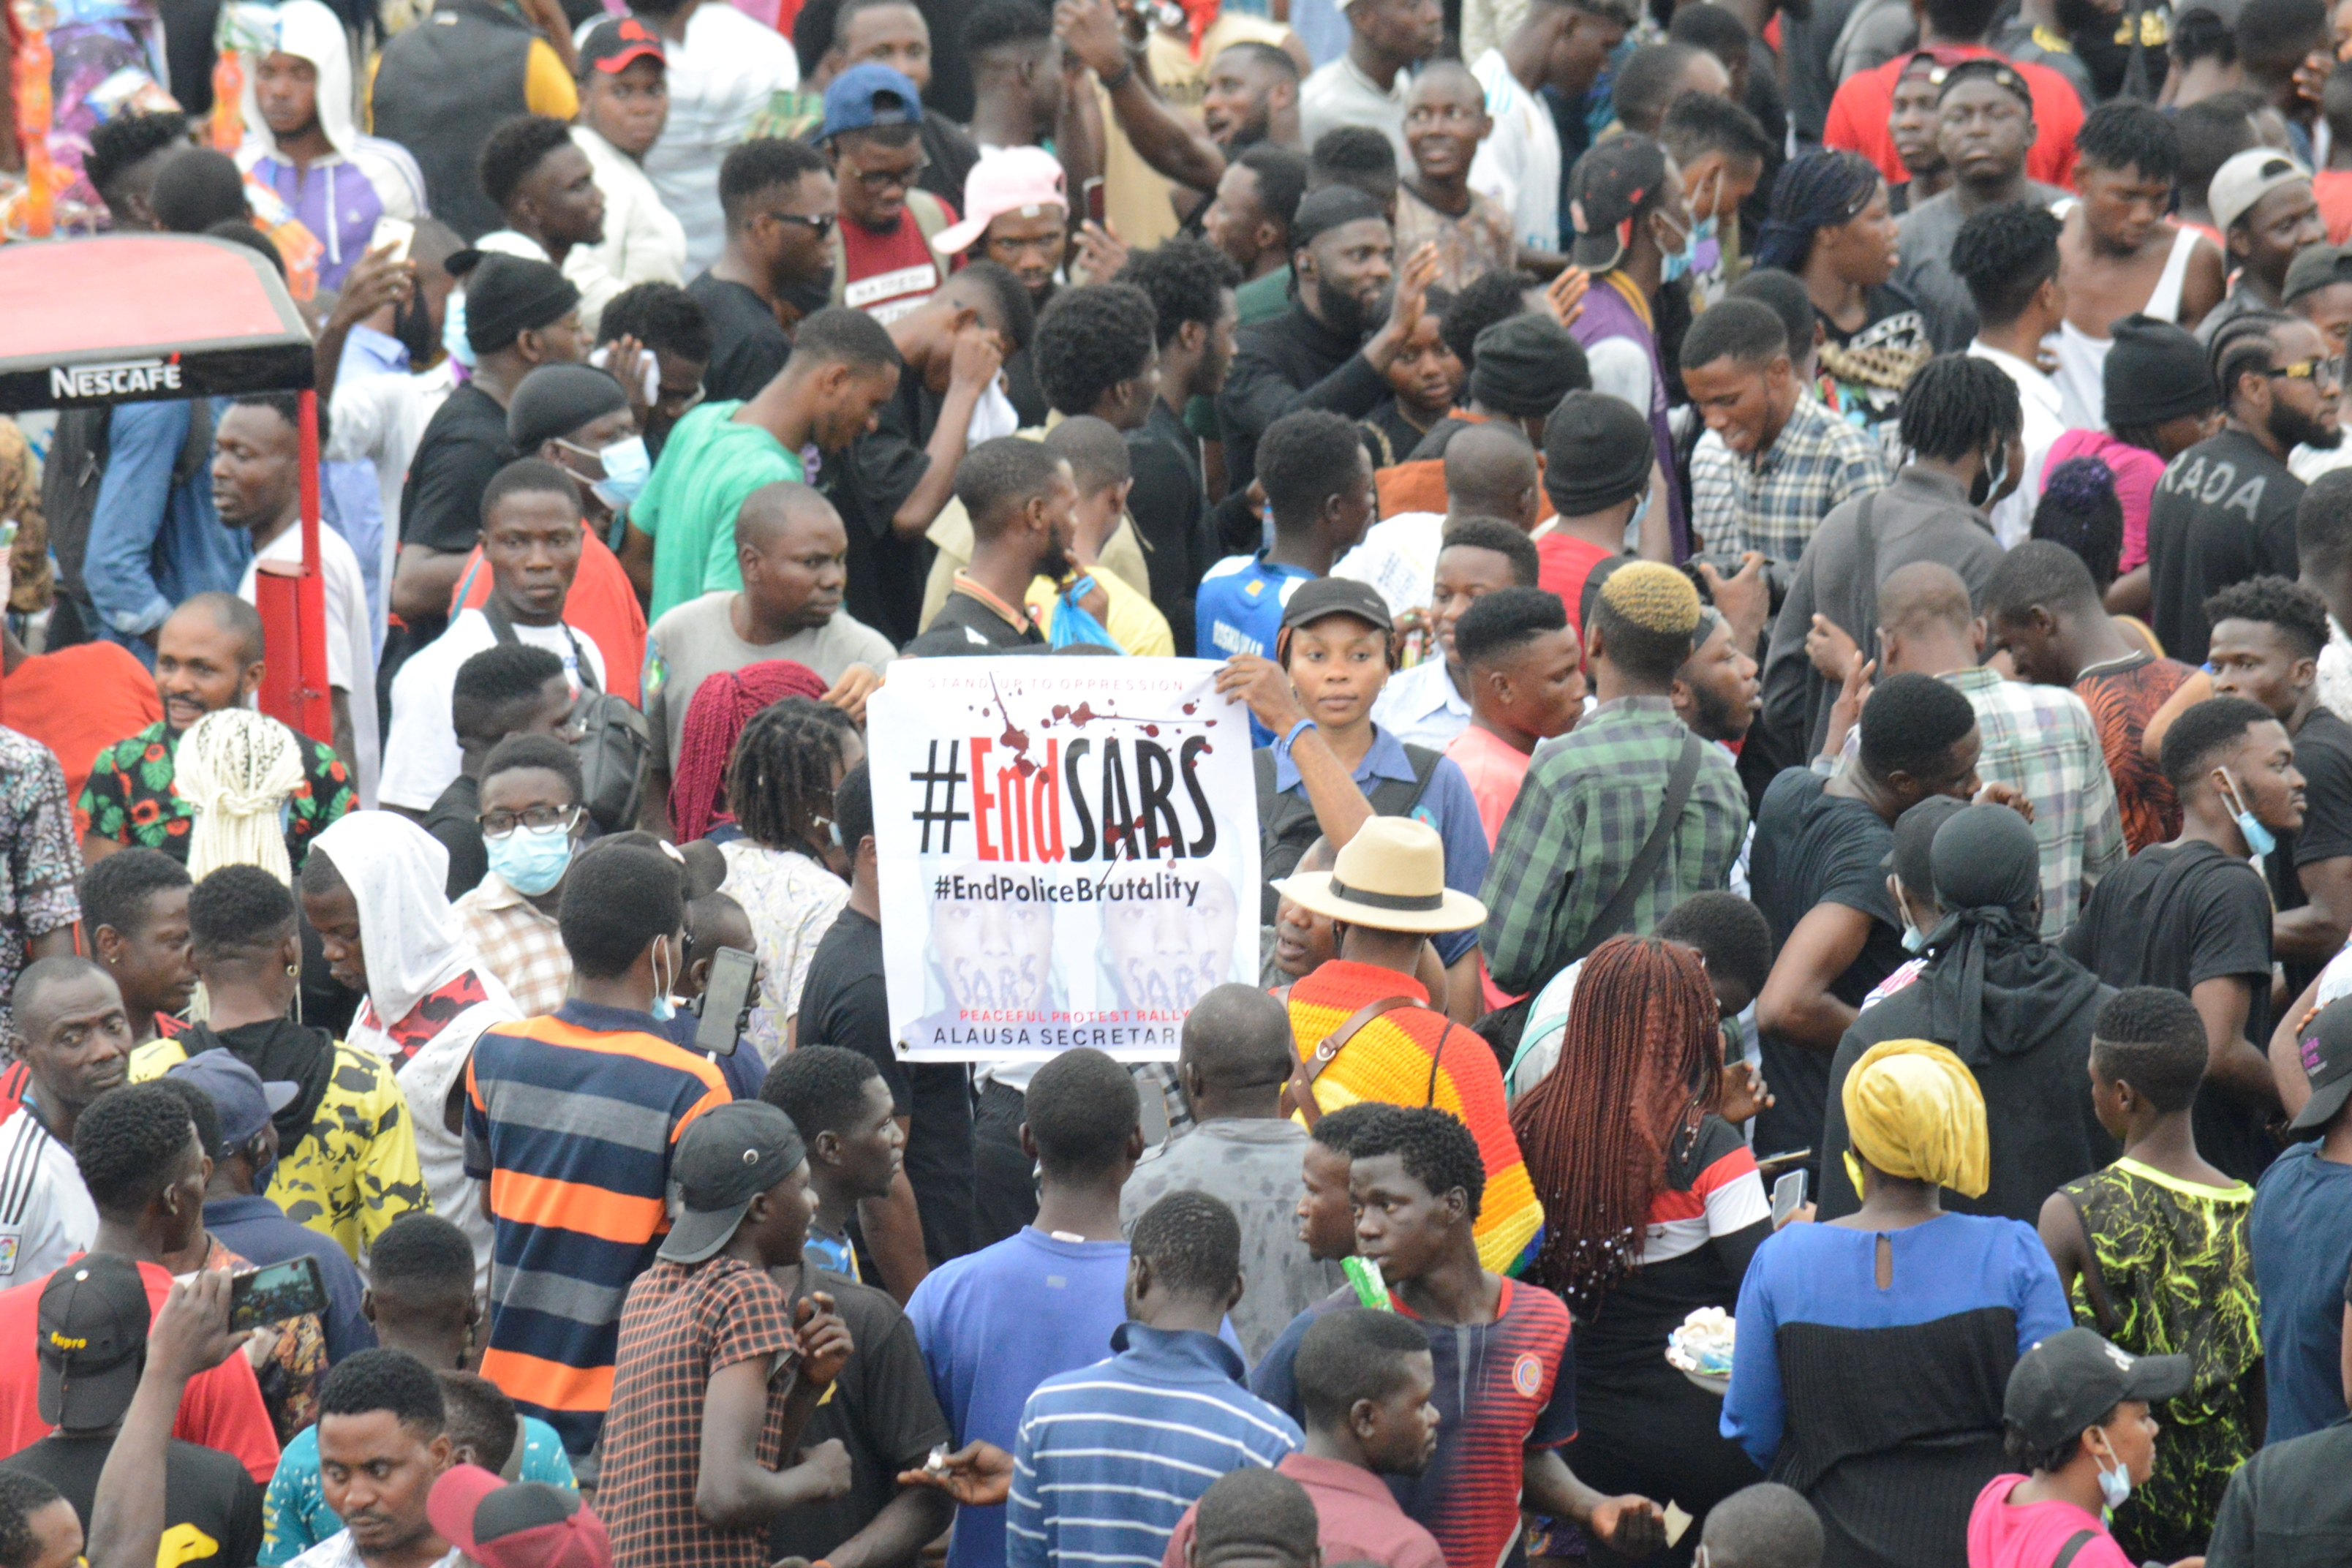 An #EndSARS protest at Alausa, Ikeja, Lagos, Nigeria in October 2020.